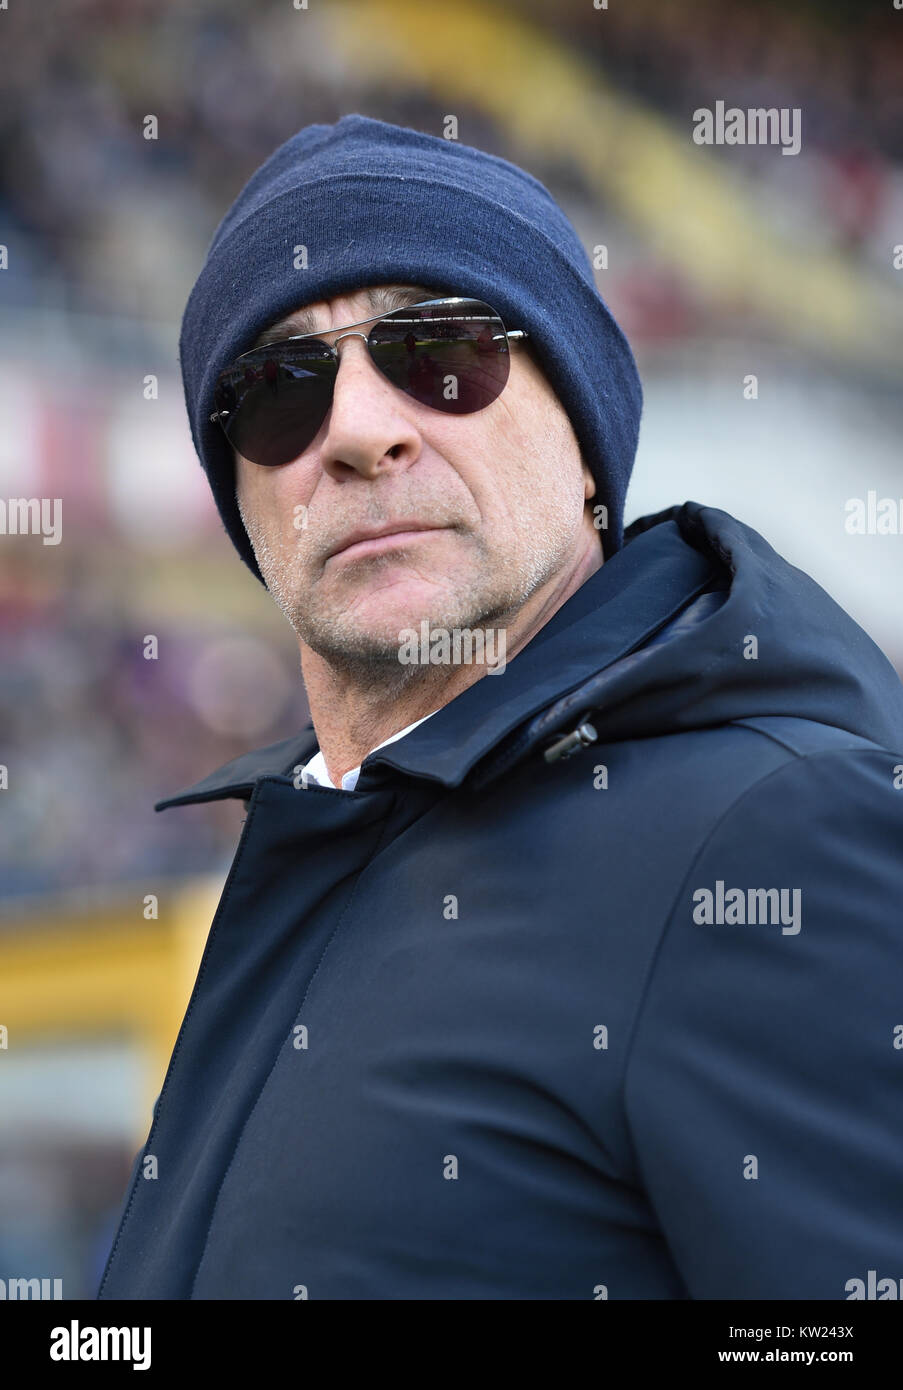 Turin, Italy. 30th Dec, 2017. Davide Ballardini head coach of Genoa CFC, during the Serie A football match between Stock Photo